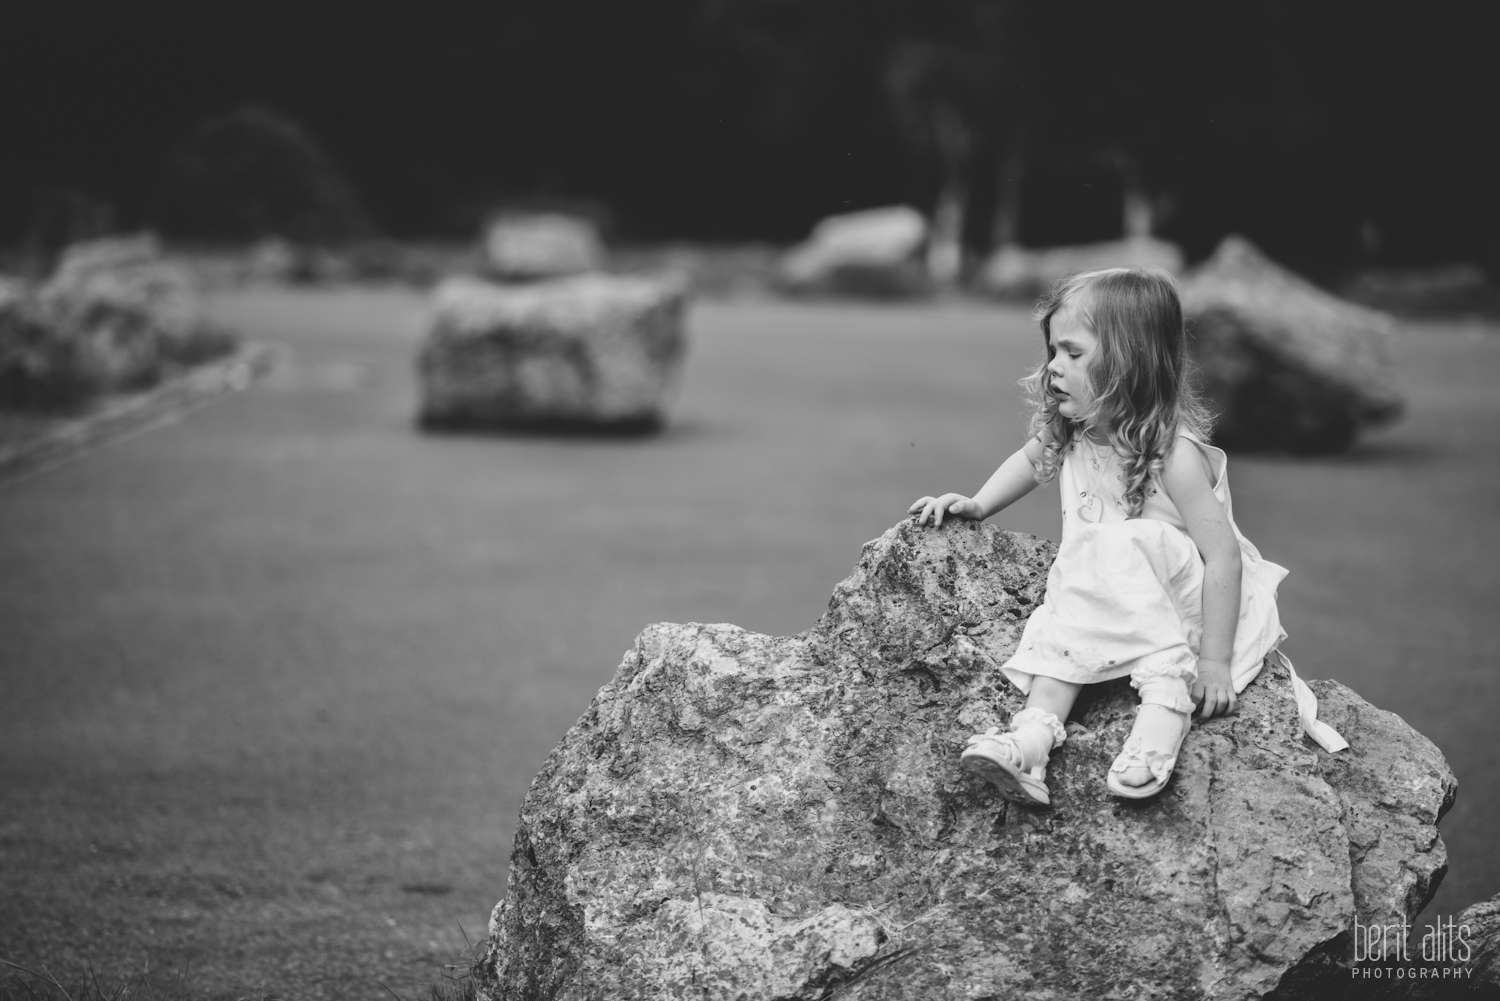 15__family_photosession_photo_shoot_creative_natural_forest_white_dress_ireland_relaxed_photographer_photography_clonmel_ireland_portrait_child_mother_happy_trees_dog